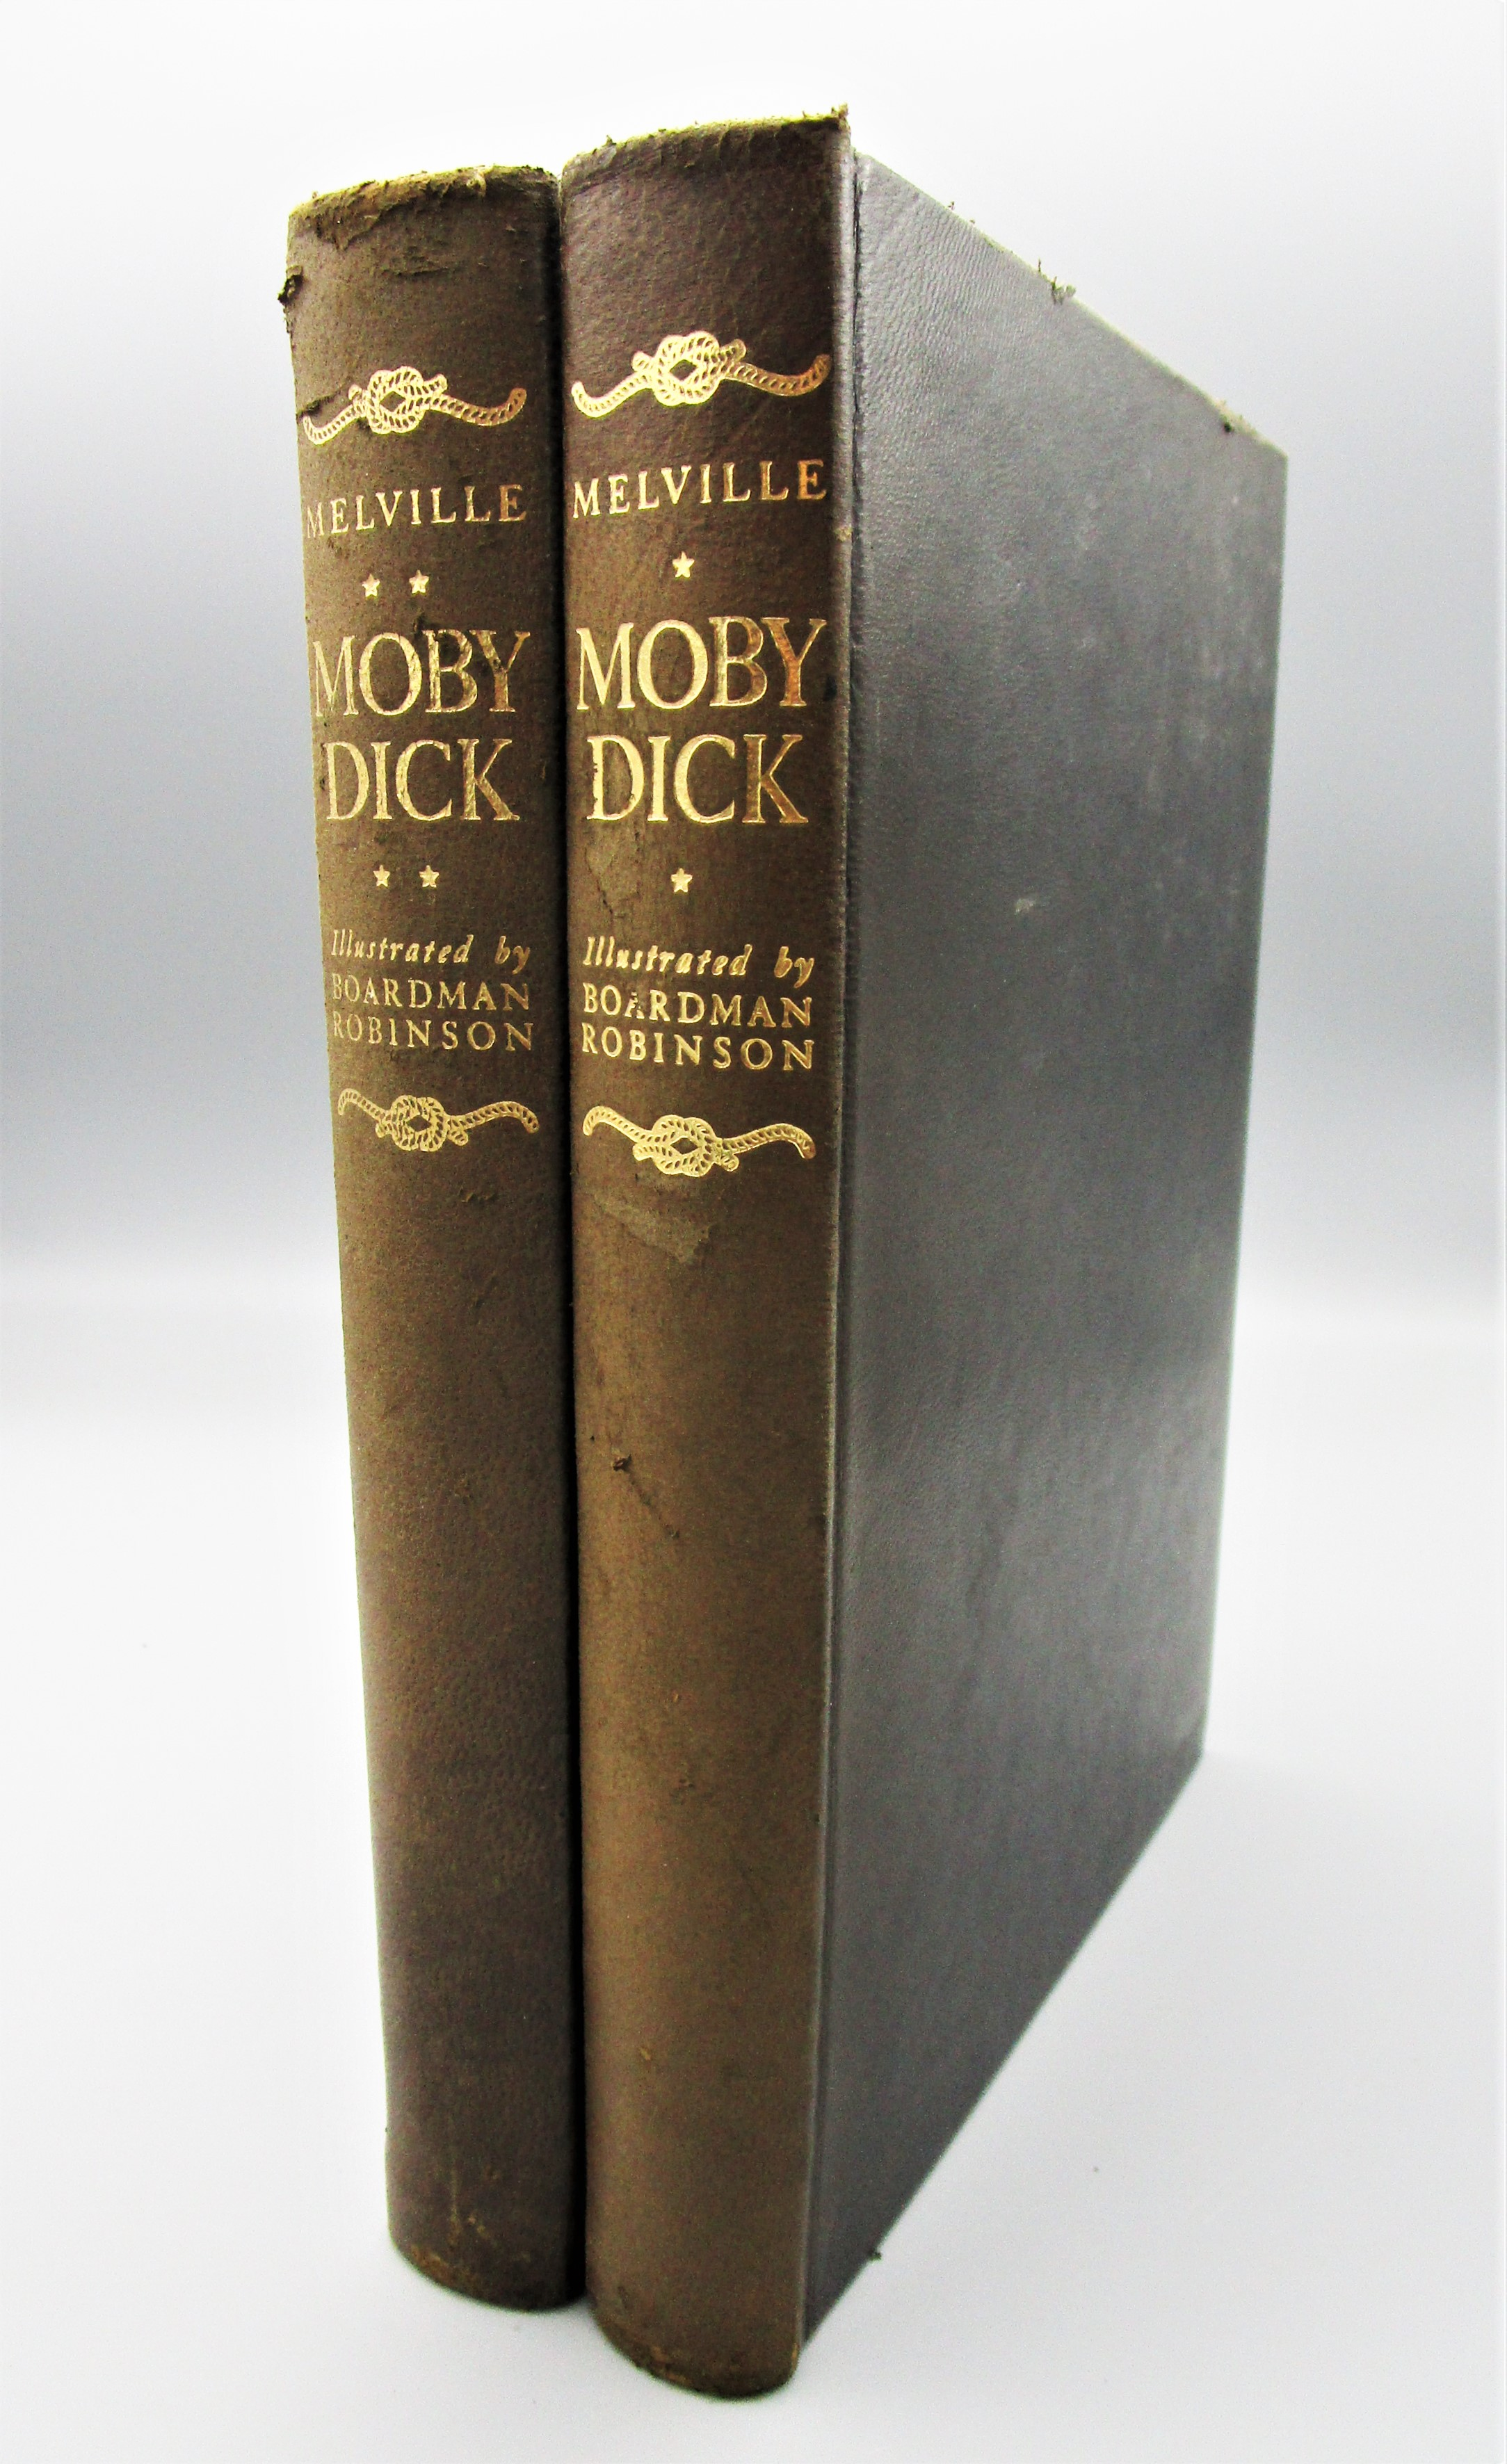 MOBY DICK, by Herman Melville - 1943 SIGNED Limited Edition